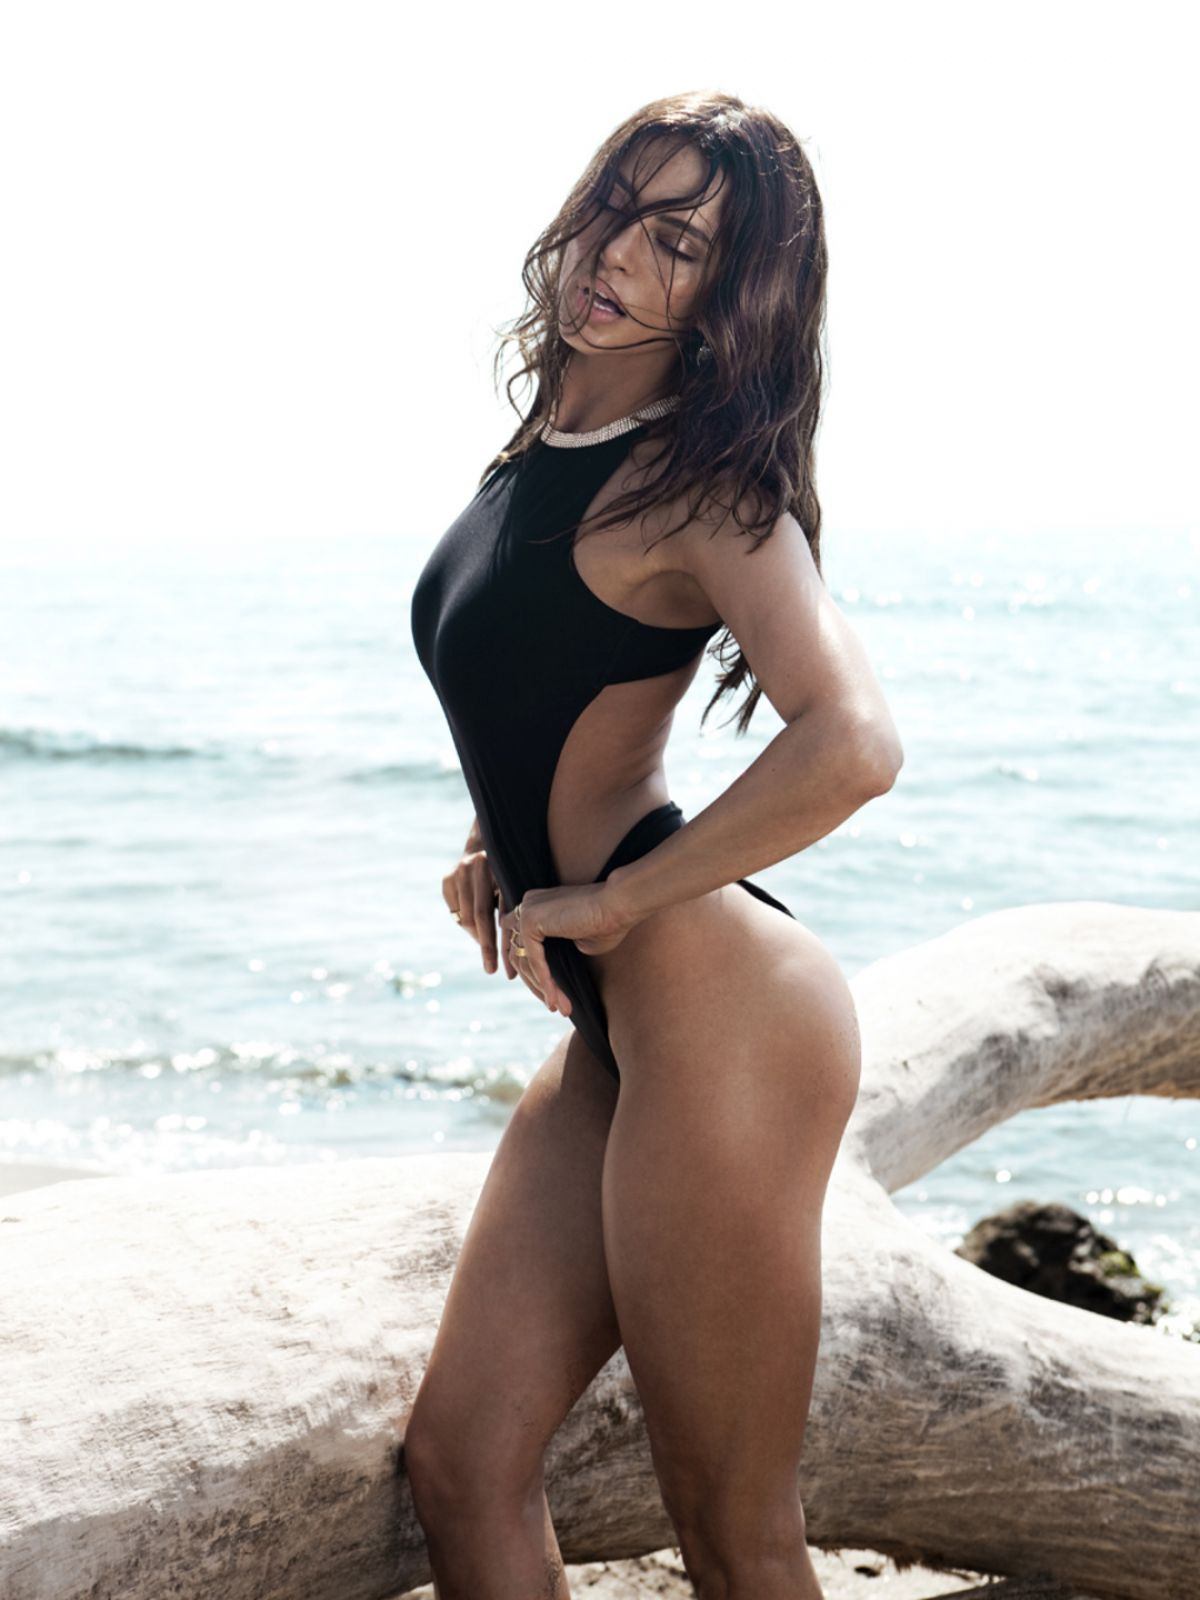 CATRINEL MENGHIA in Swimsuit for the One Magazine, June 2014 Issue